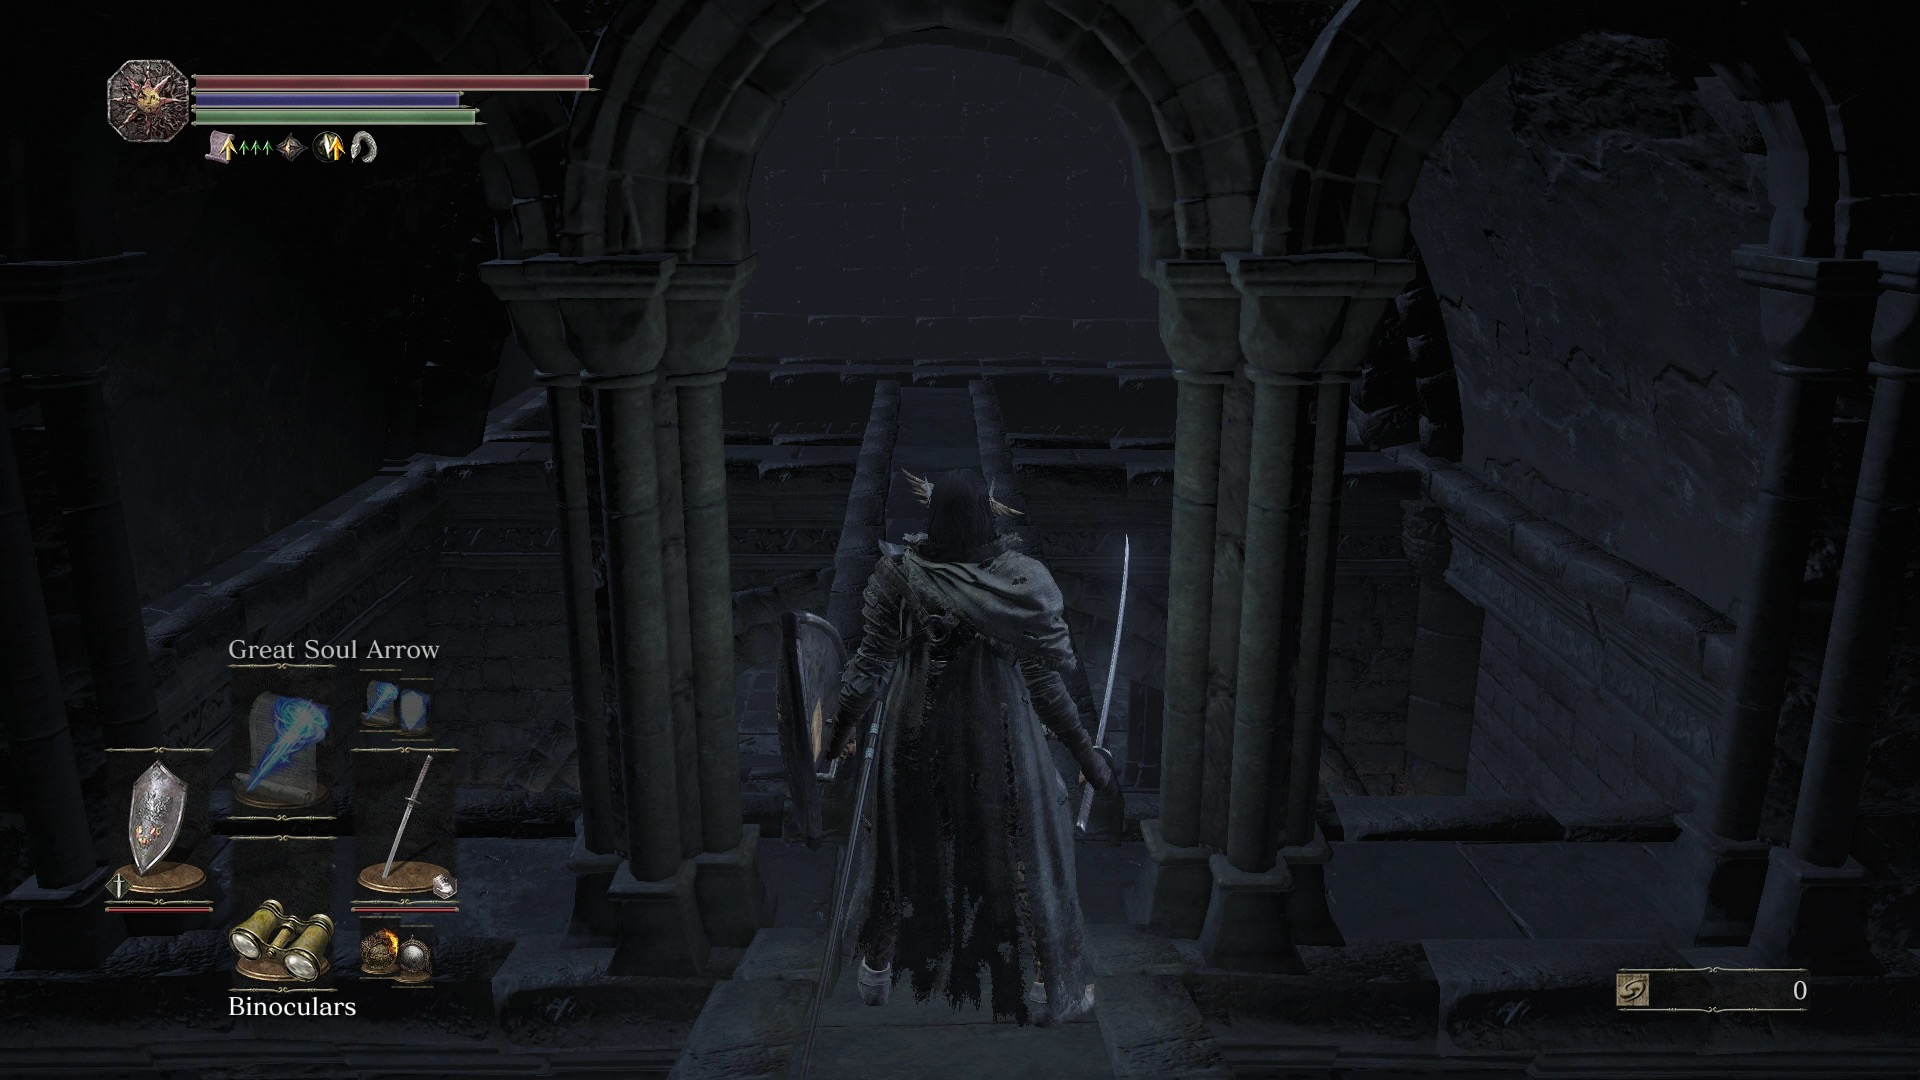 Dark Souls Ii Final Review The Trouble With Sequels: Dark Souls 3 Covetous Silver Serpent Ring